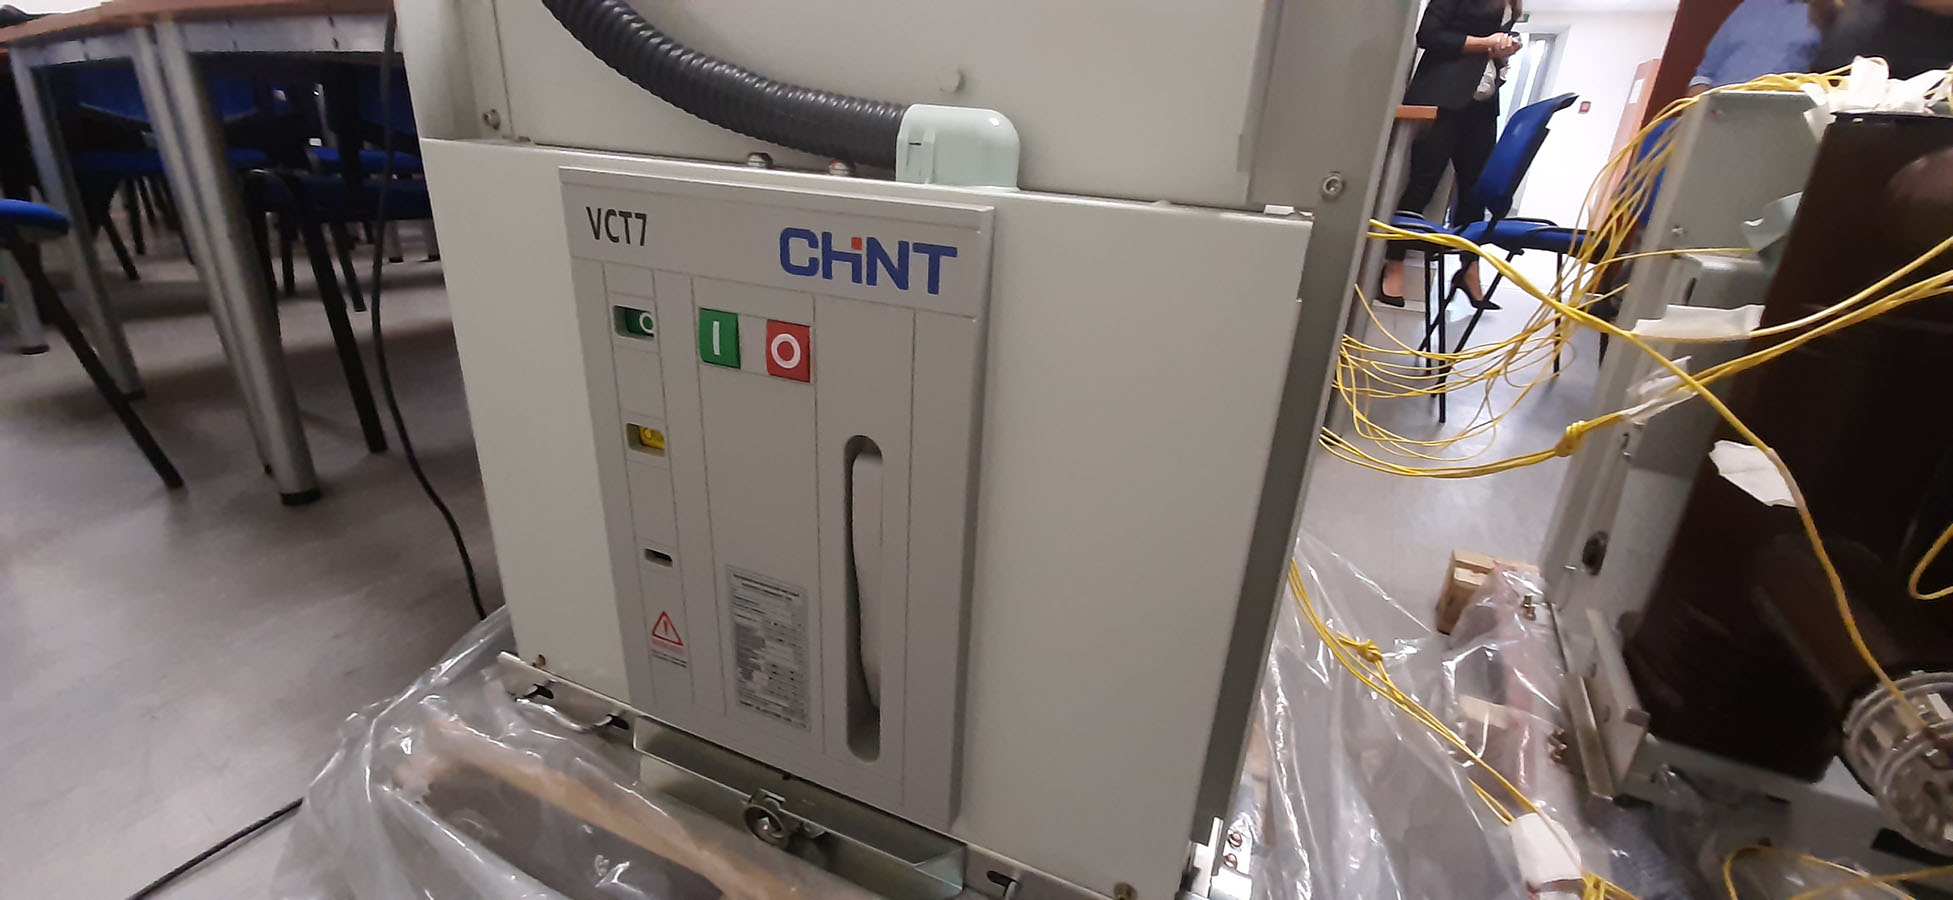 Chint VCT7